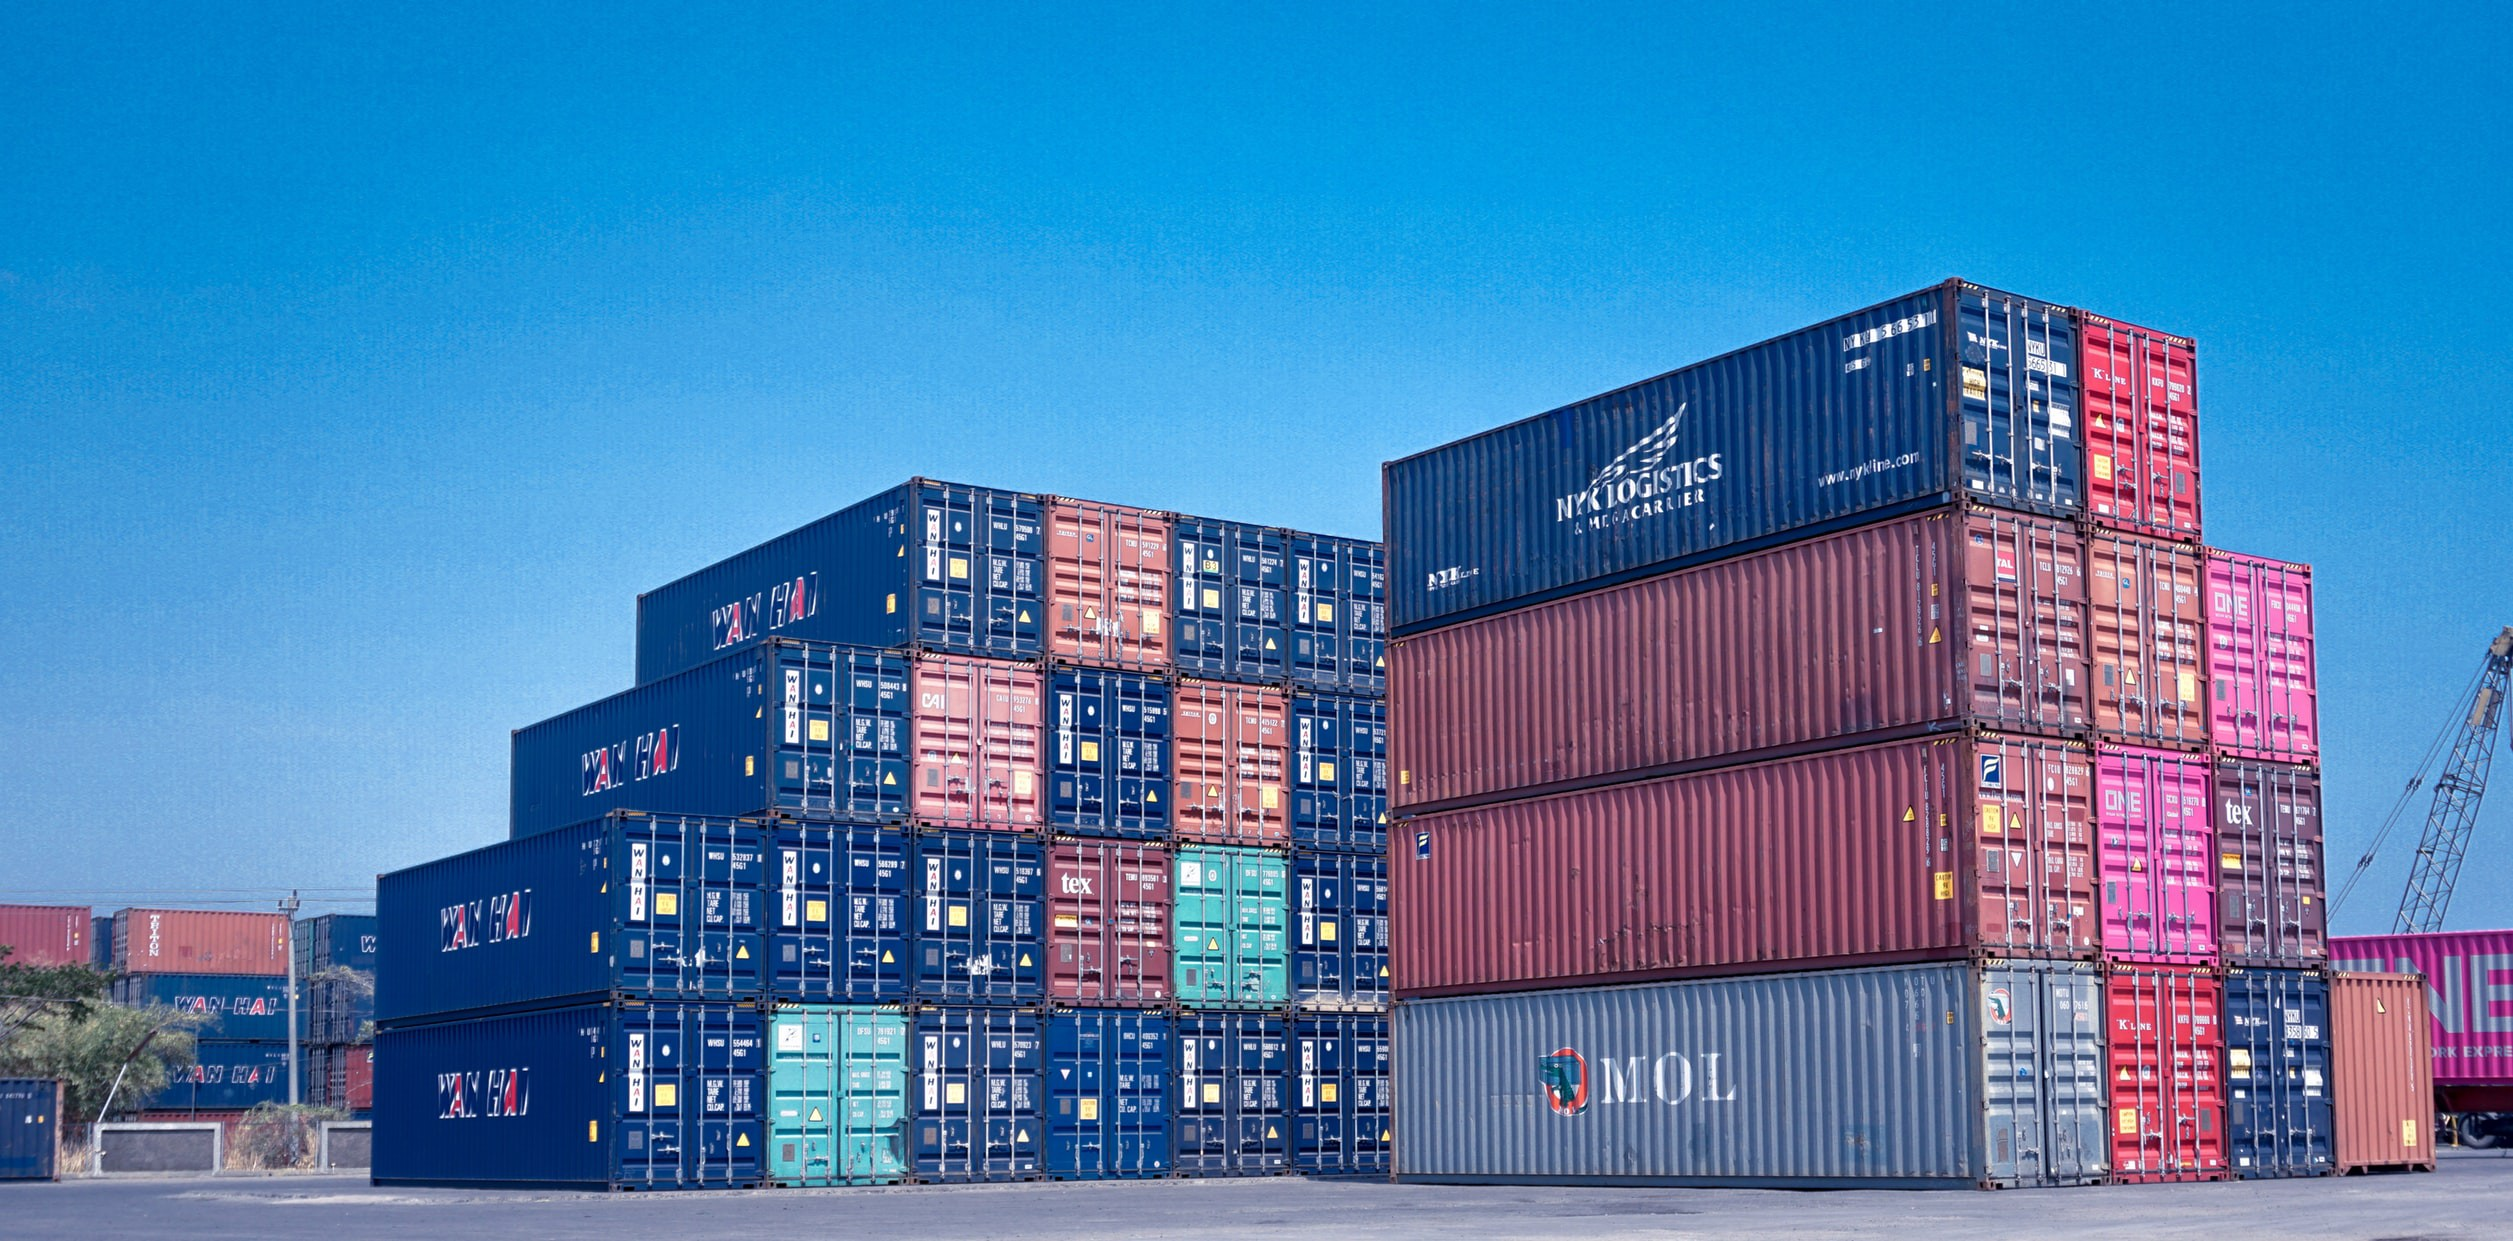 Patterns in Shipment Delays of Imports into the USA